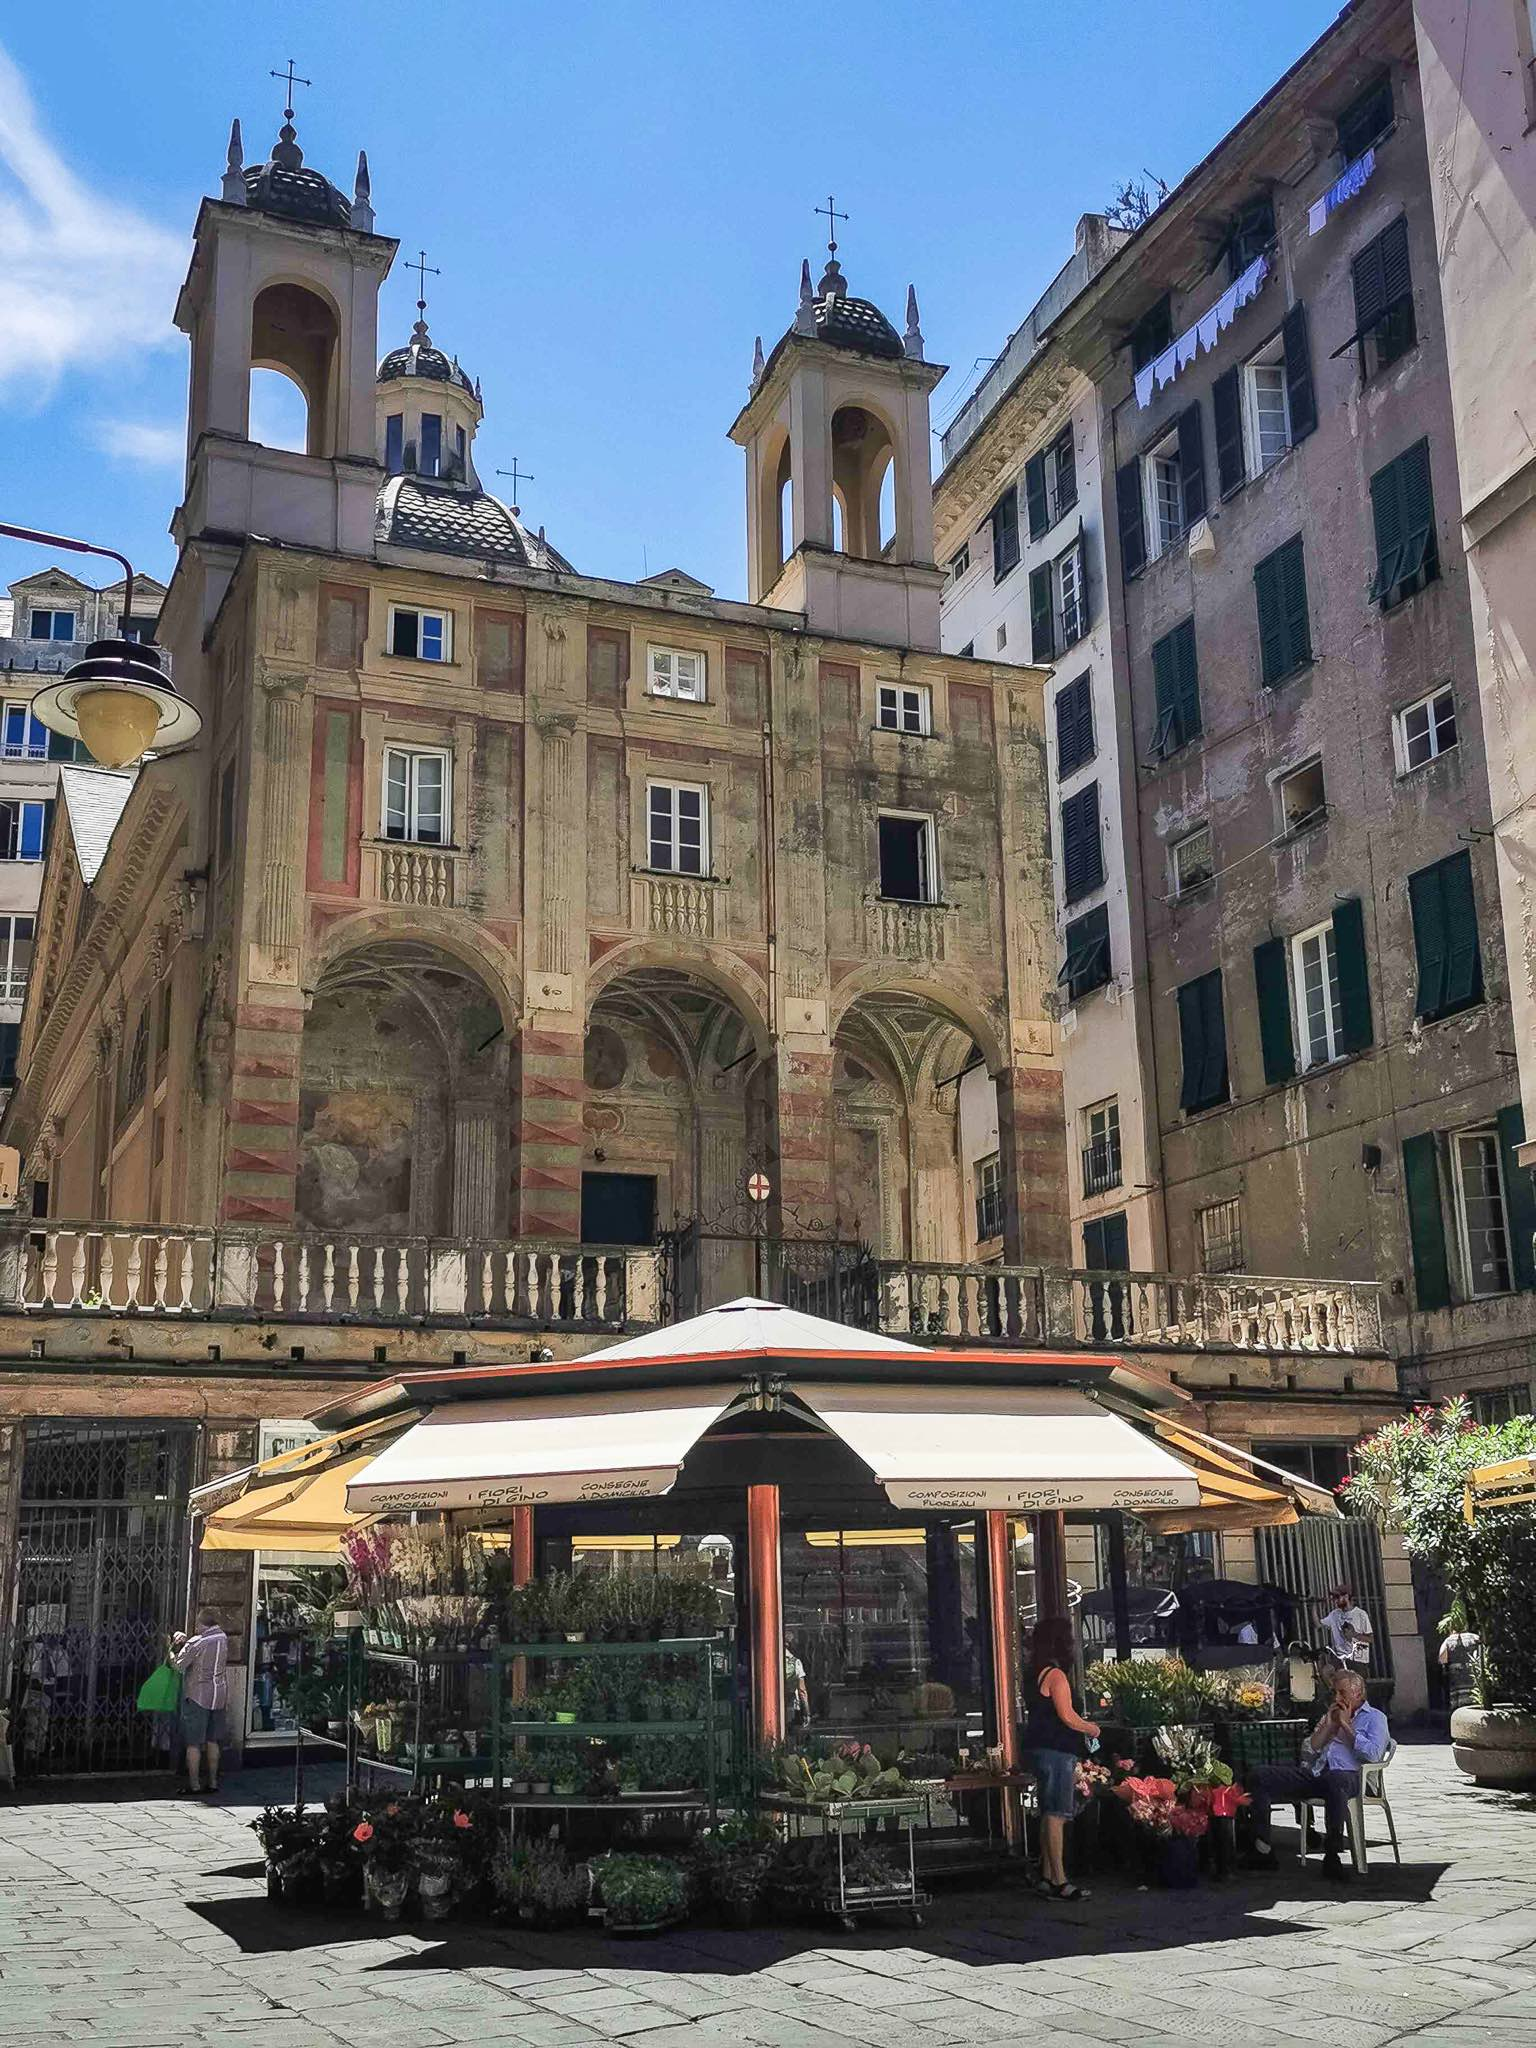 Piazza Banchi in Genoa with a flower kiosk and the Church of San Pietro in Banchi